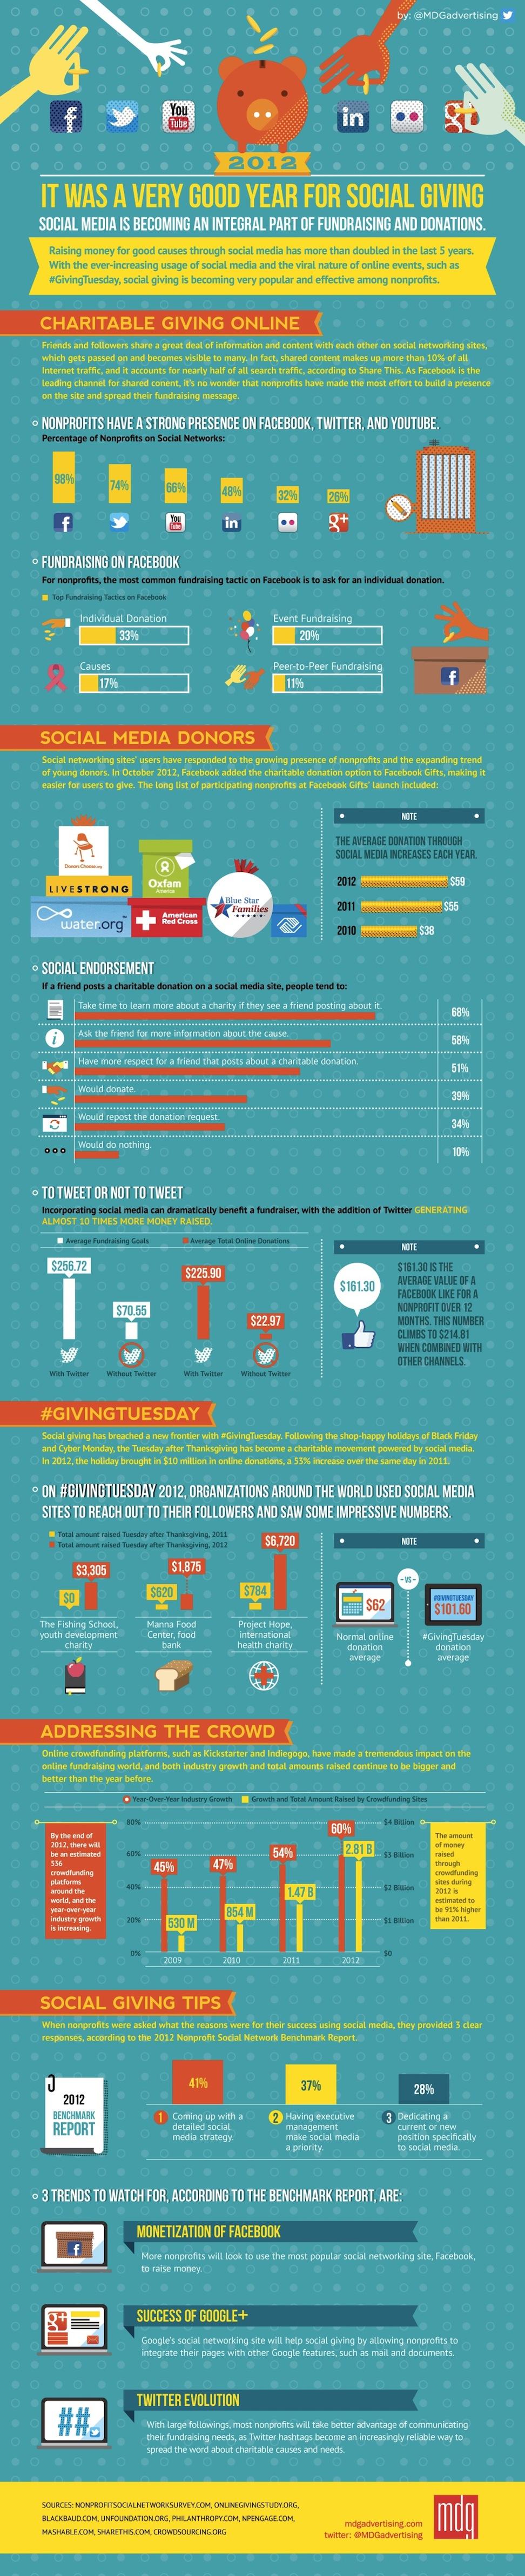 Role of Social Media in Raising Funds in 2012